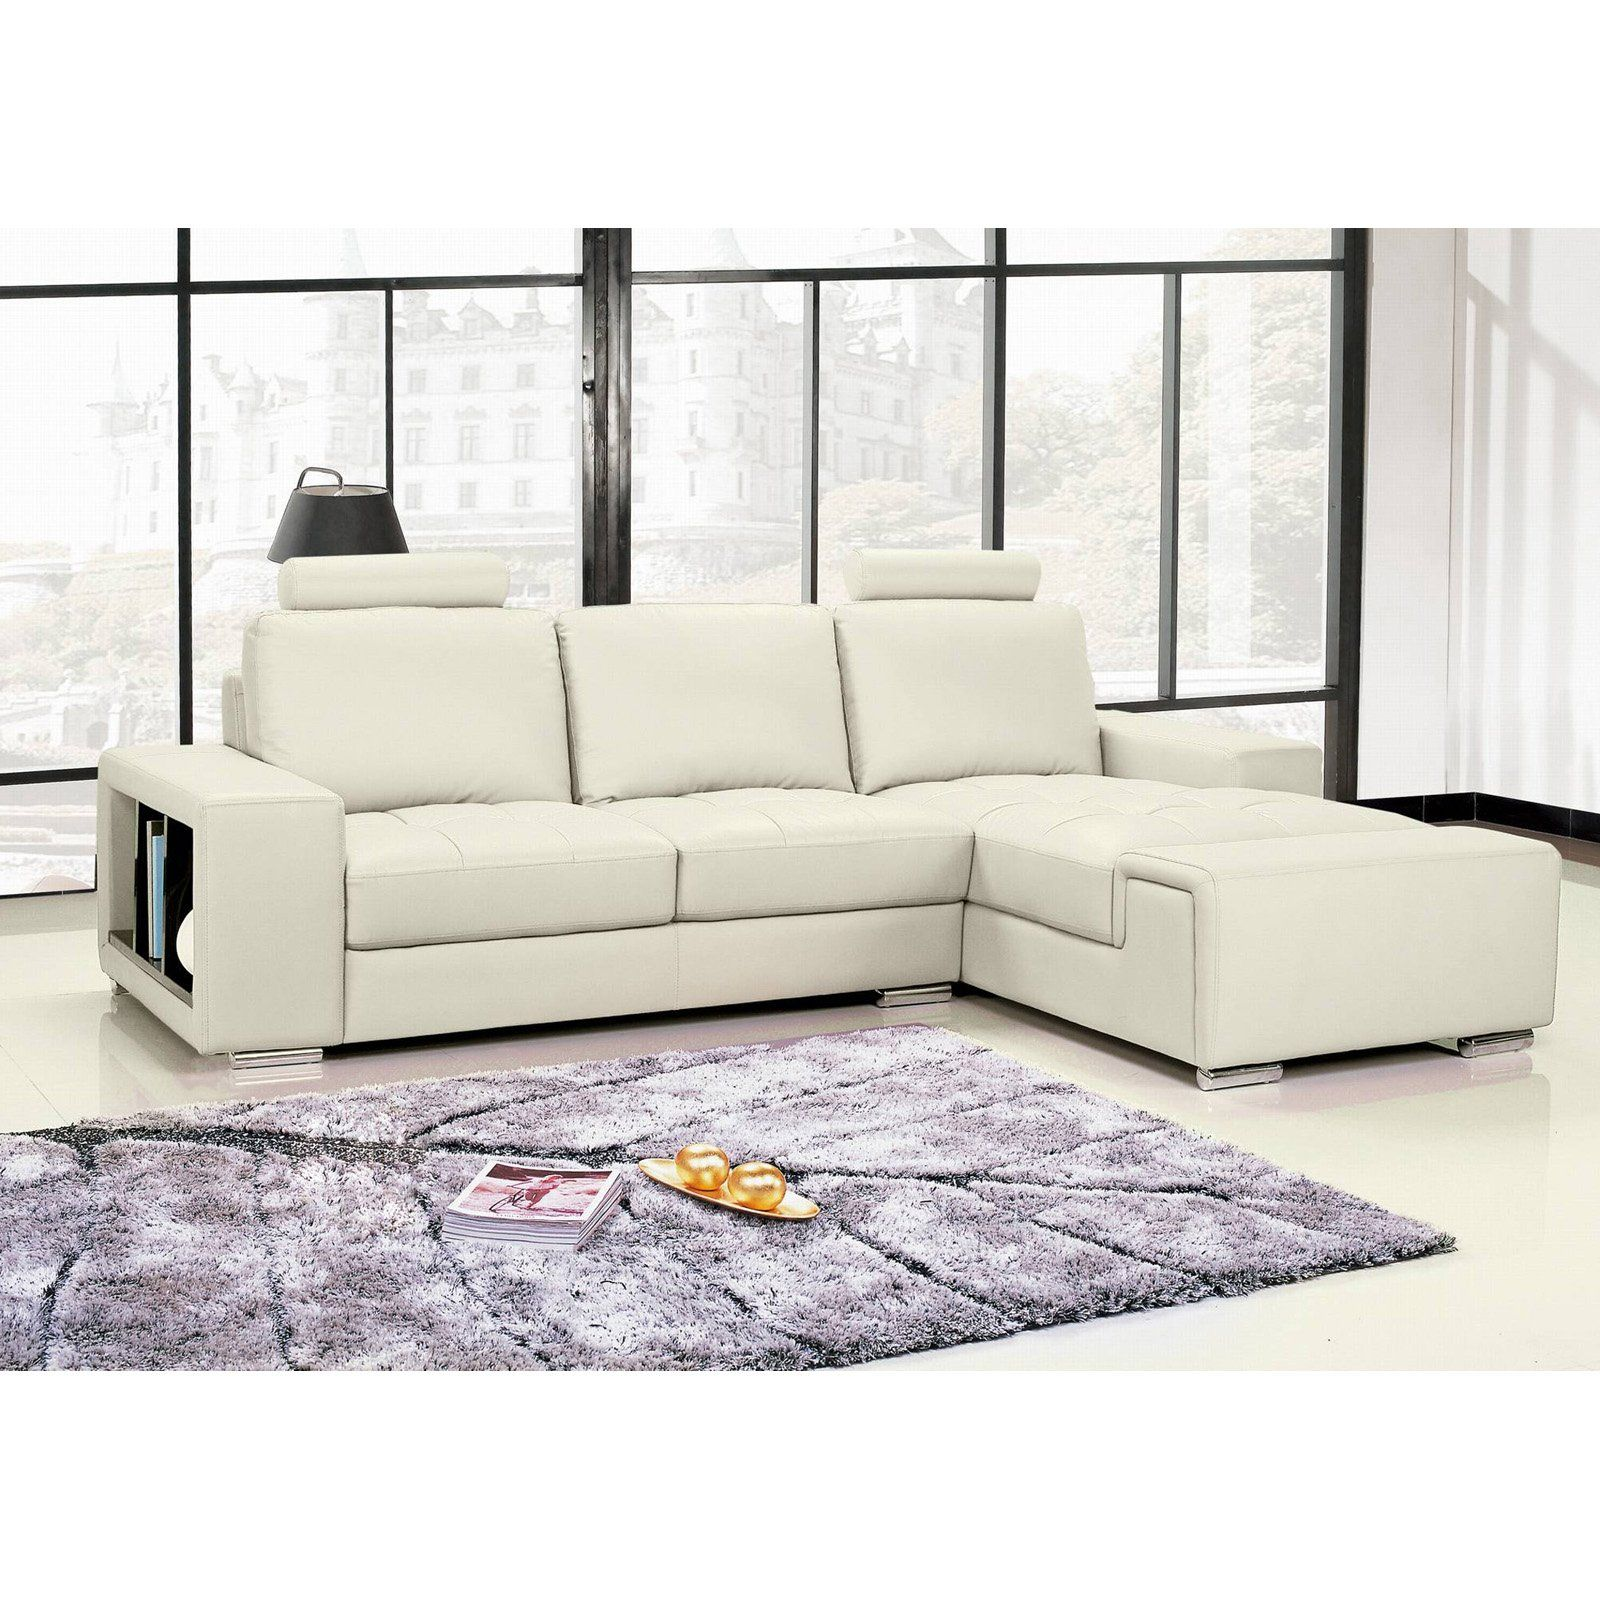 Have to have it. A C Pacific Jasmine Leather Sectional $1599.99 ...